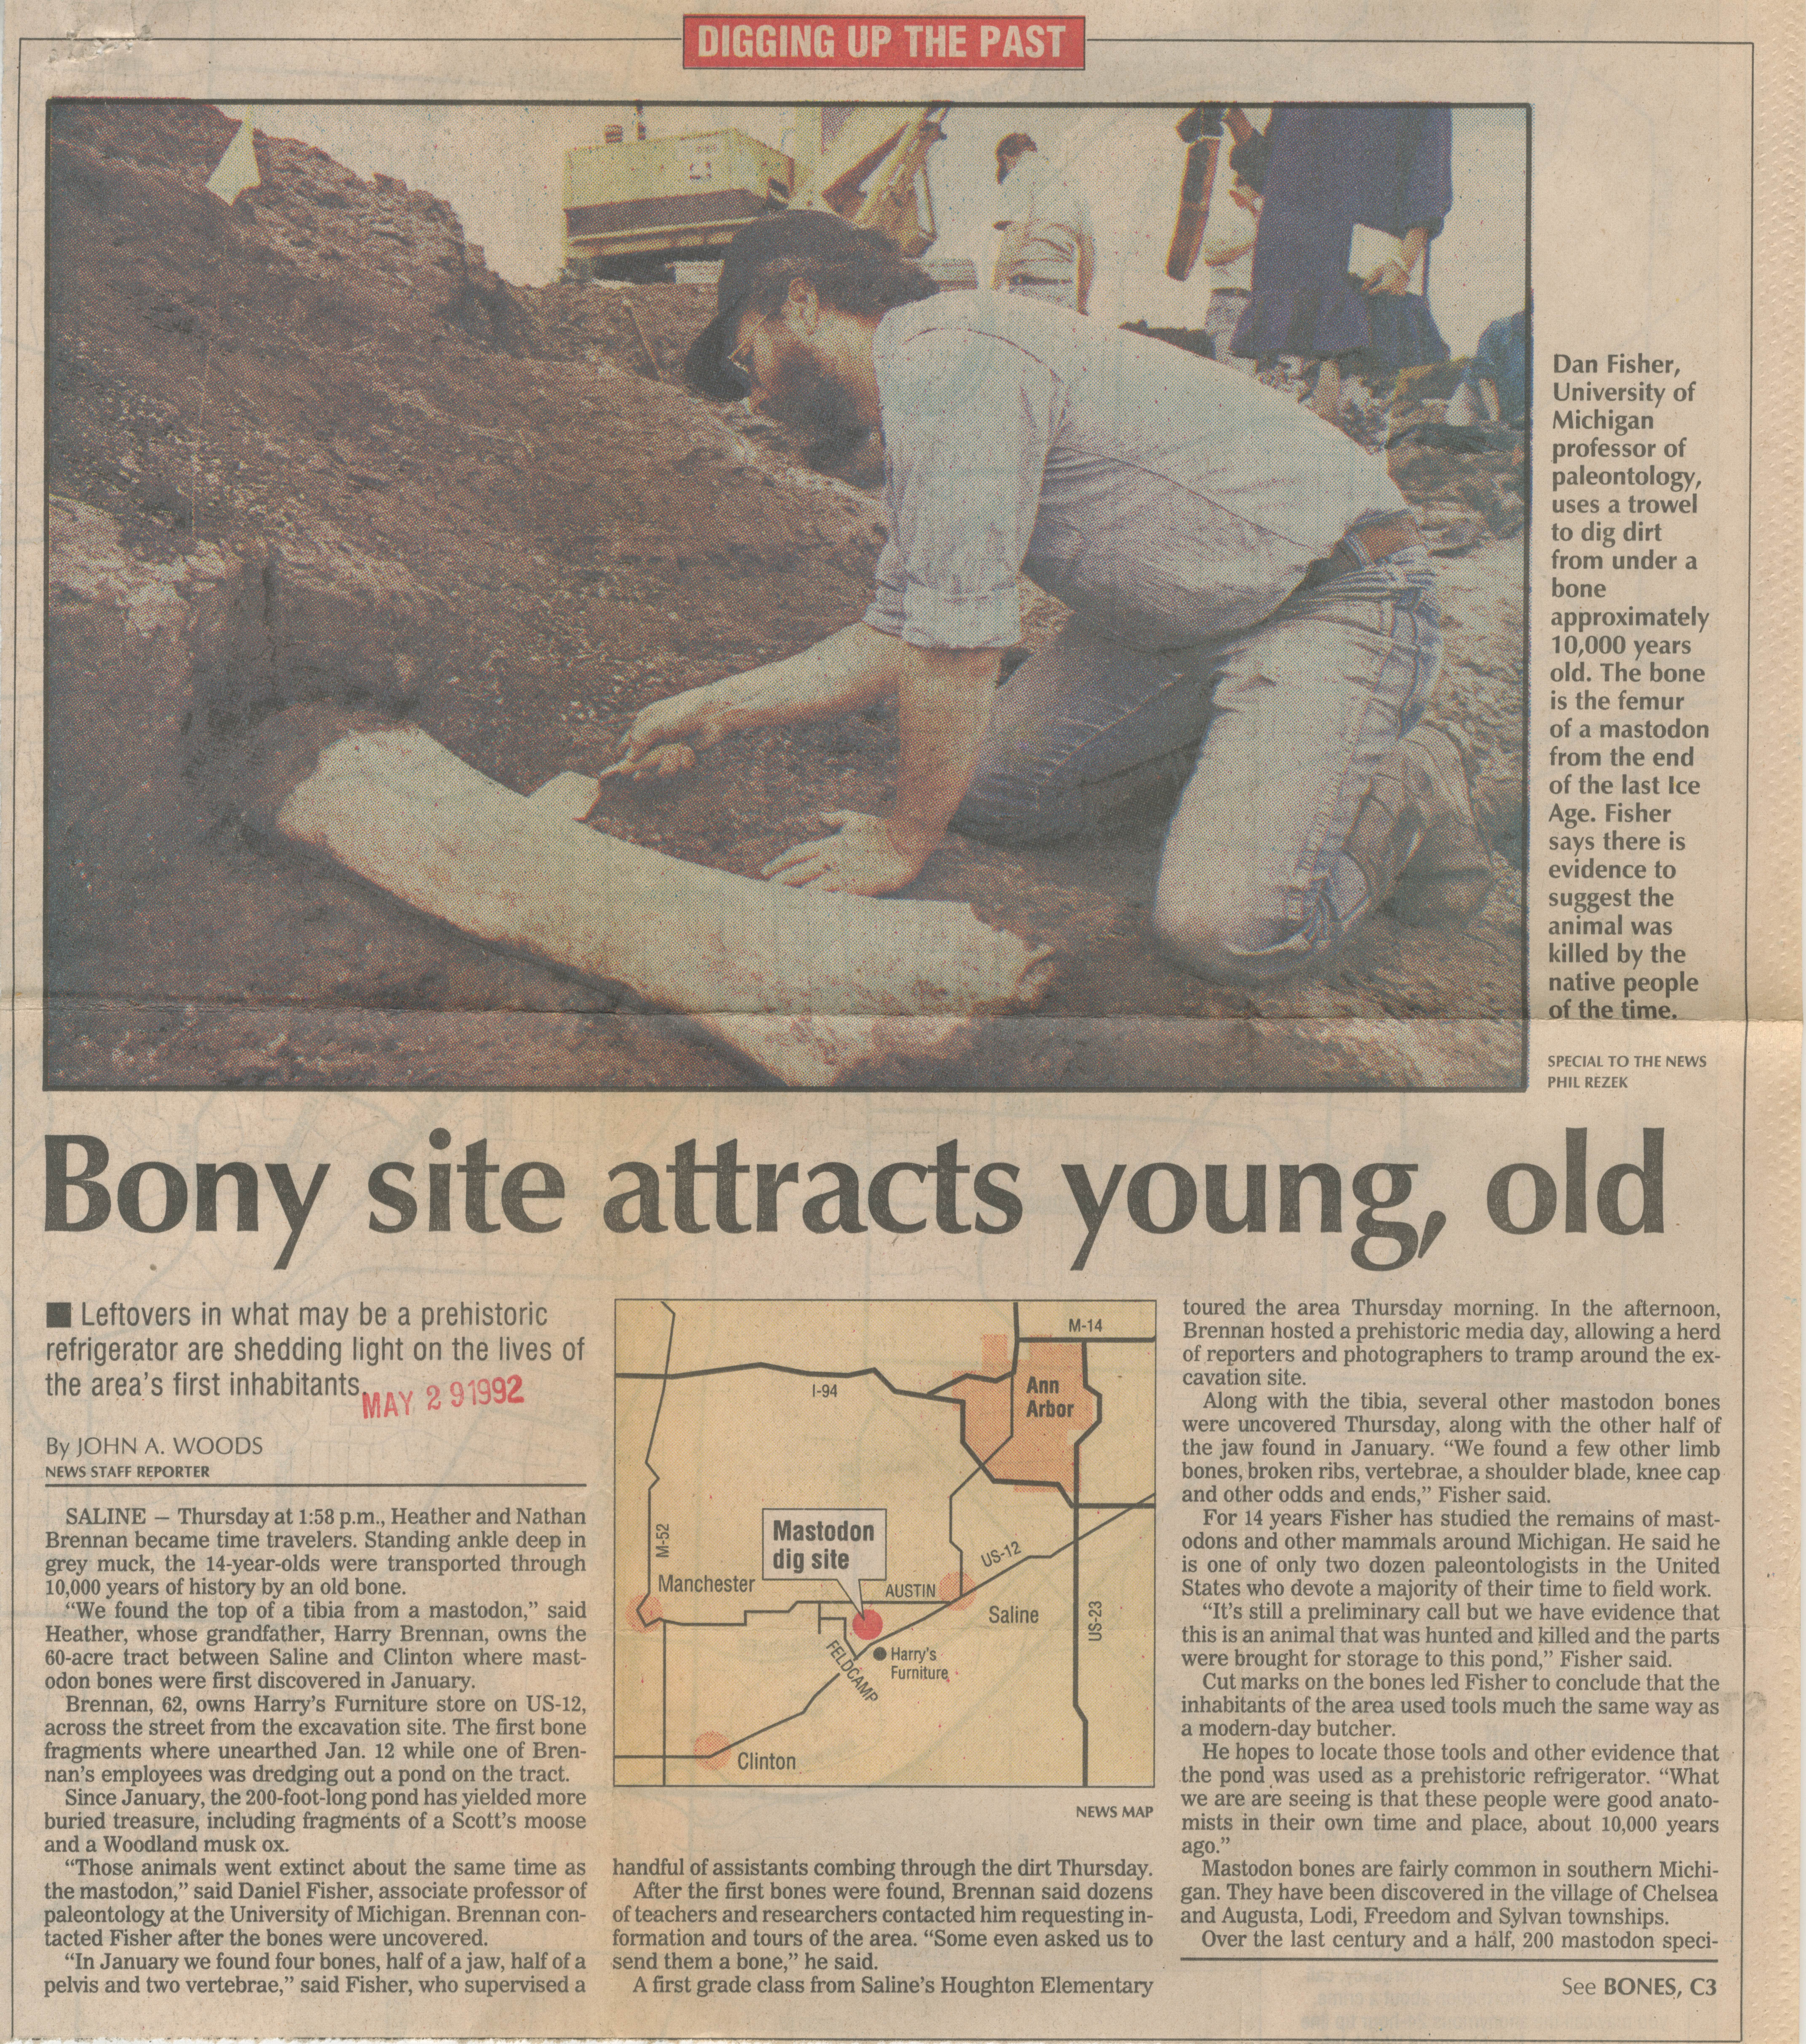 Bony Site Attracts Young, Old image